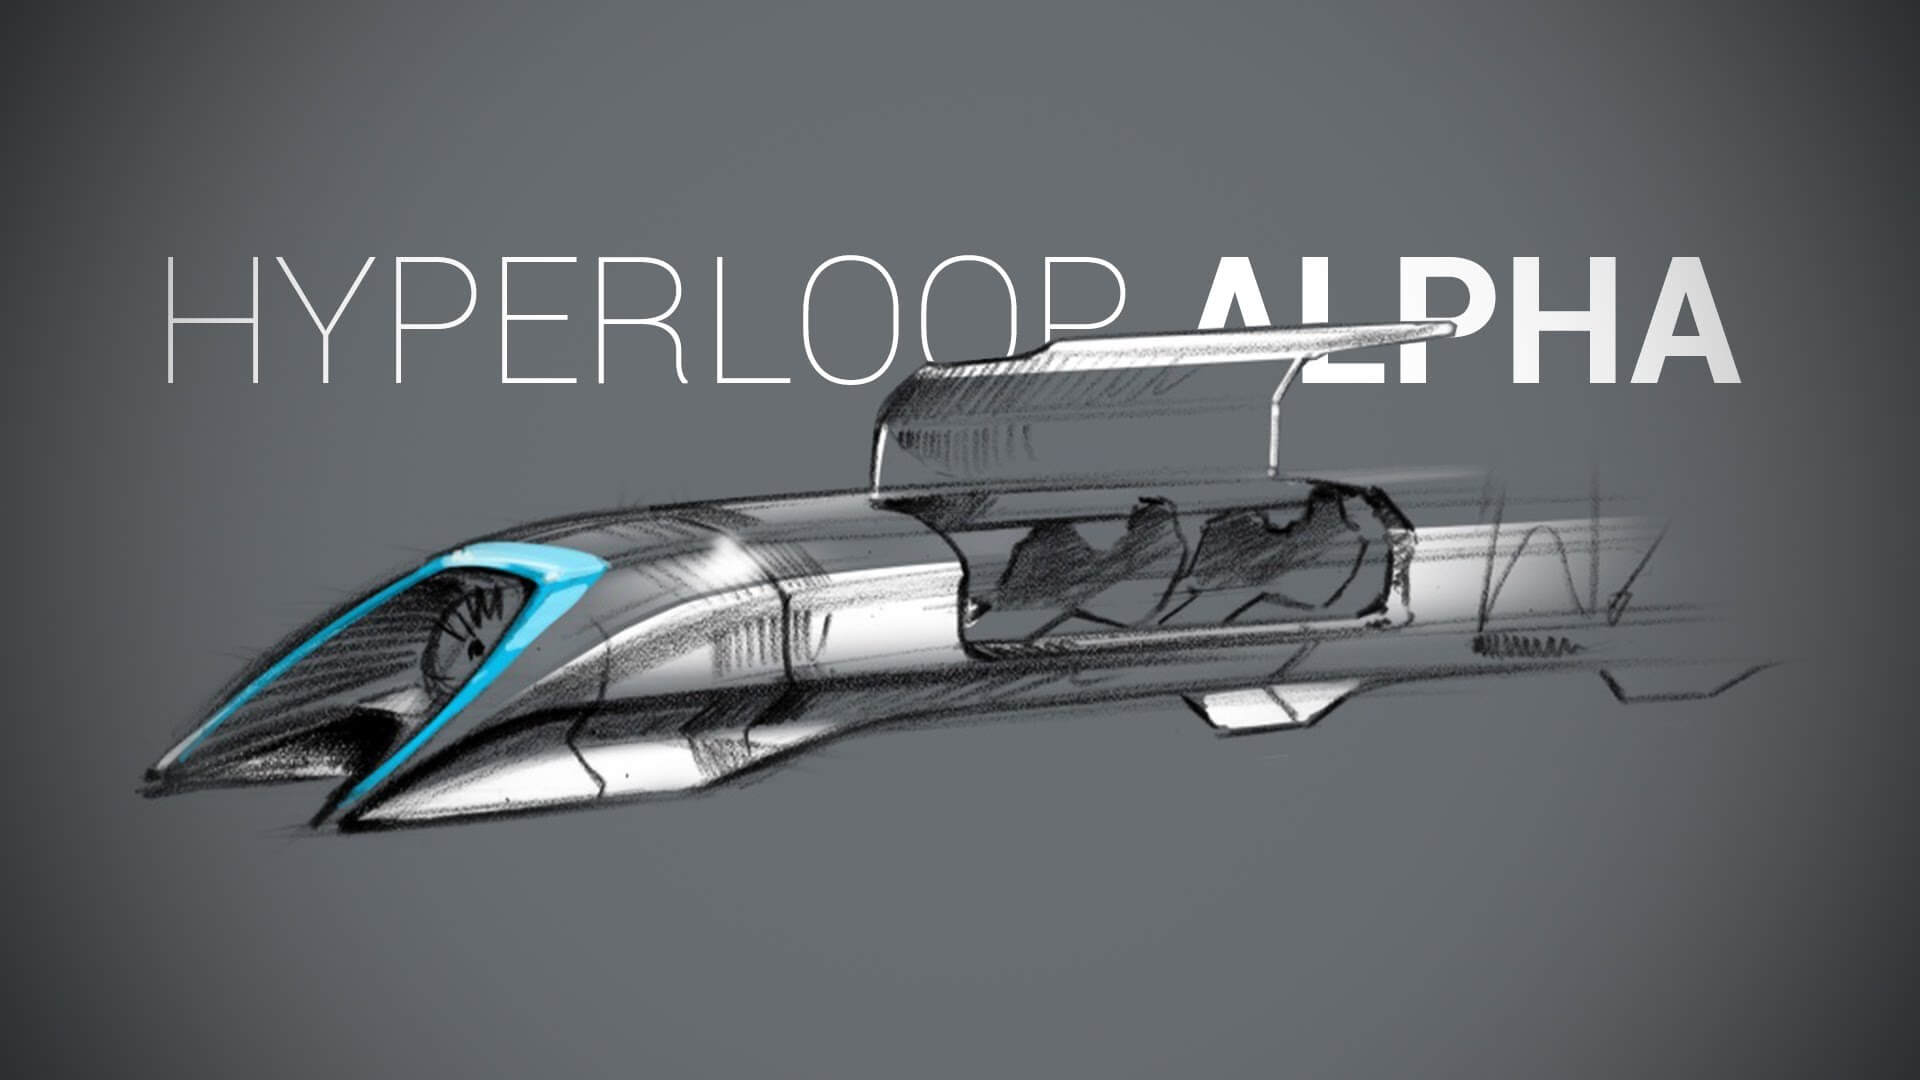 Hyperloop Construction to Start in 2016